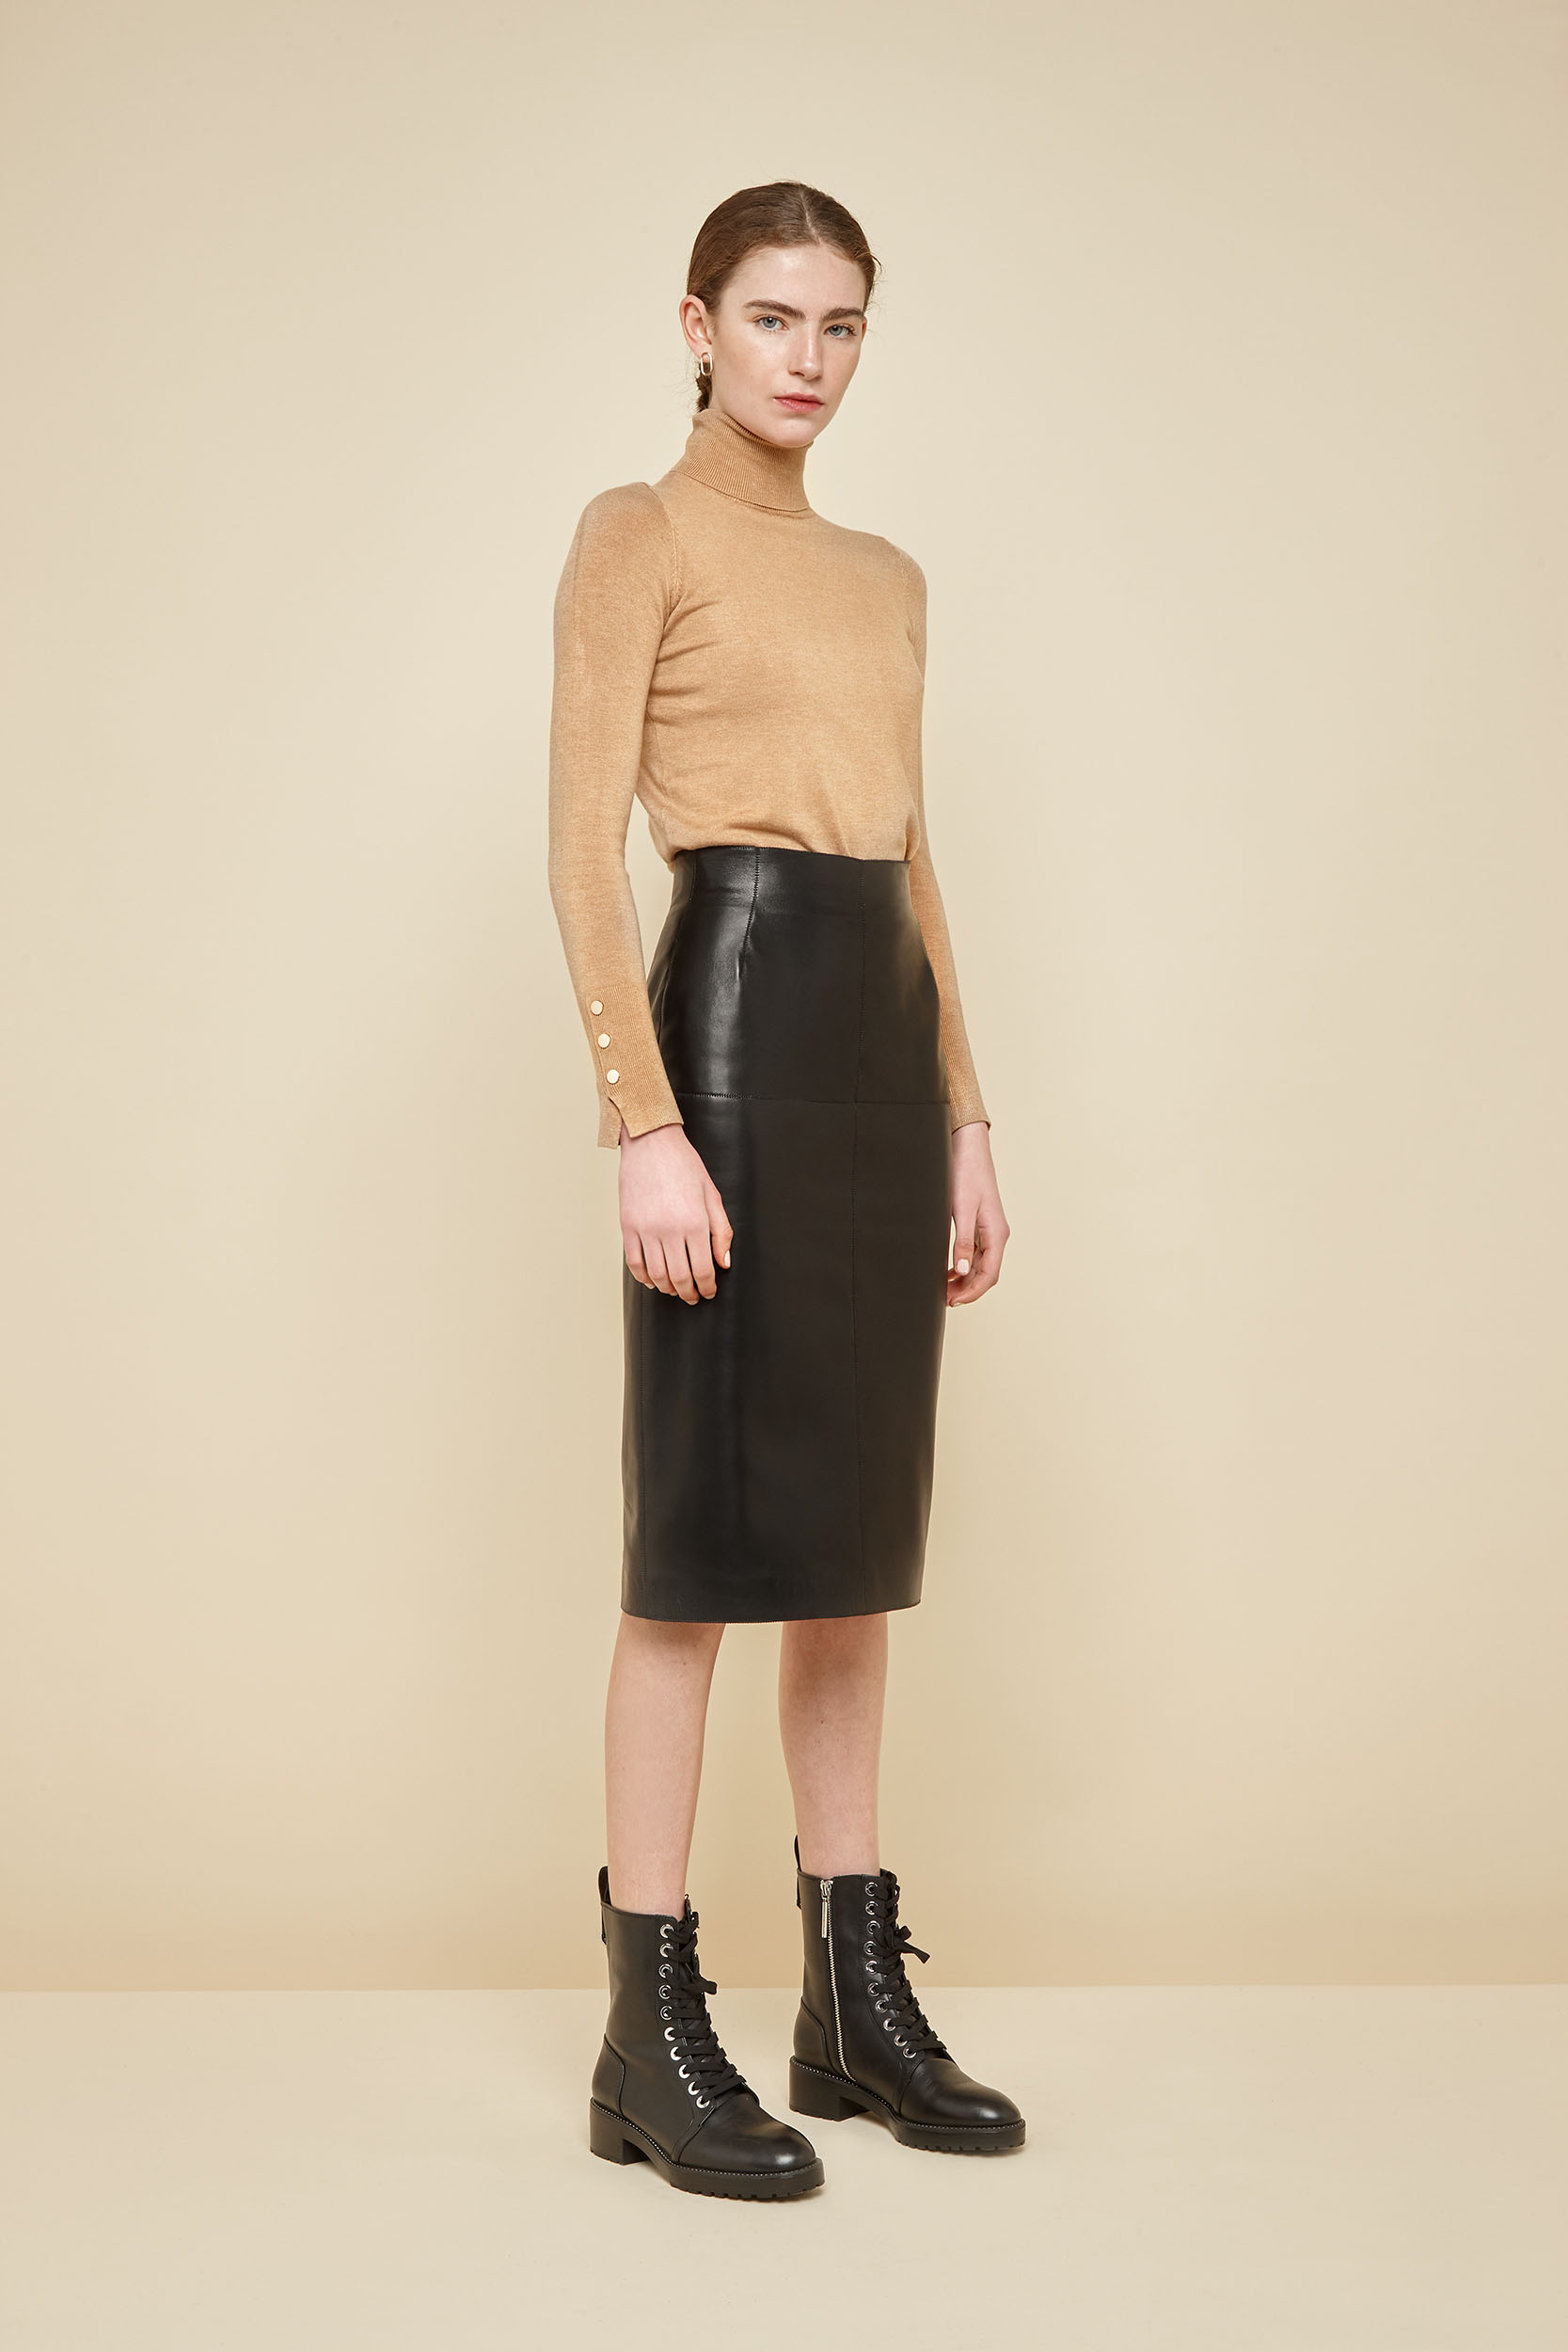 84a877ad34c2 Black Leather Pencil Skirt | Women | Gushlow and Cole